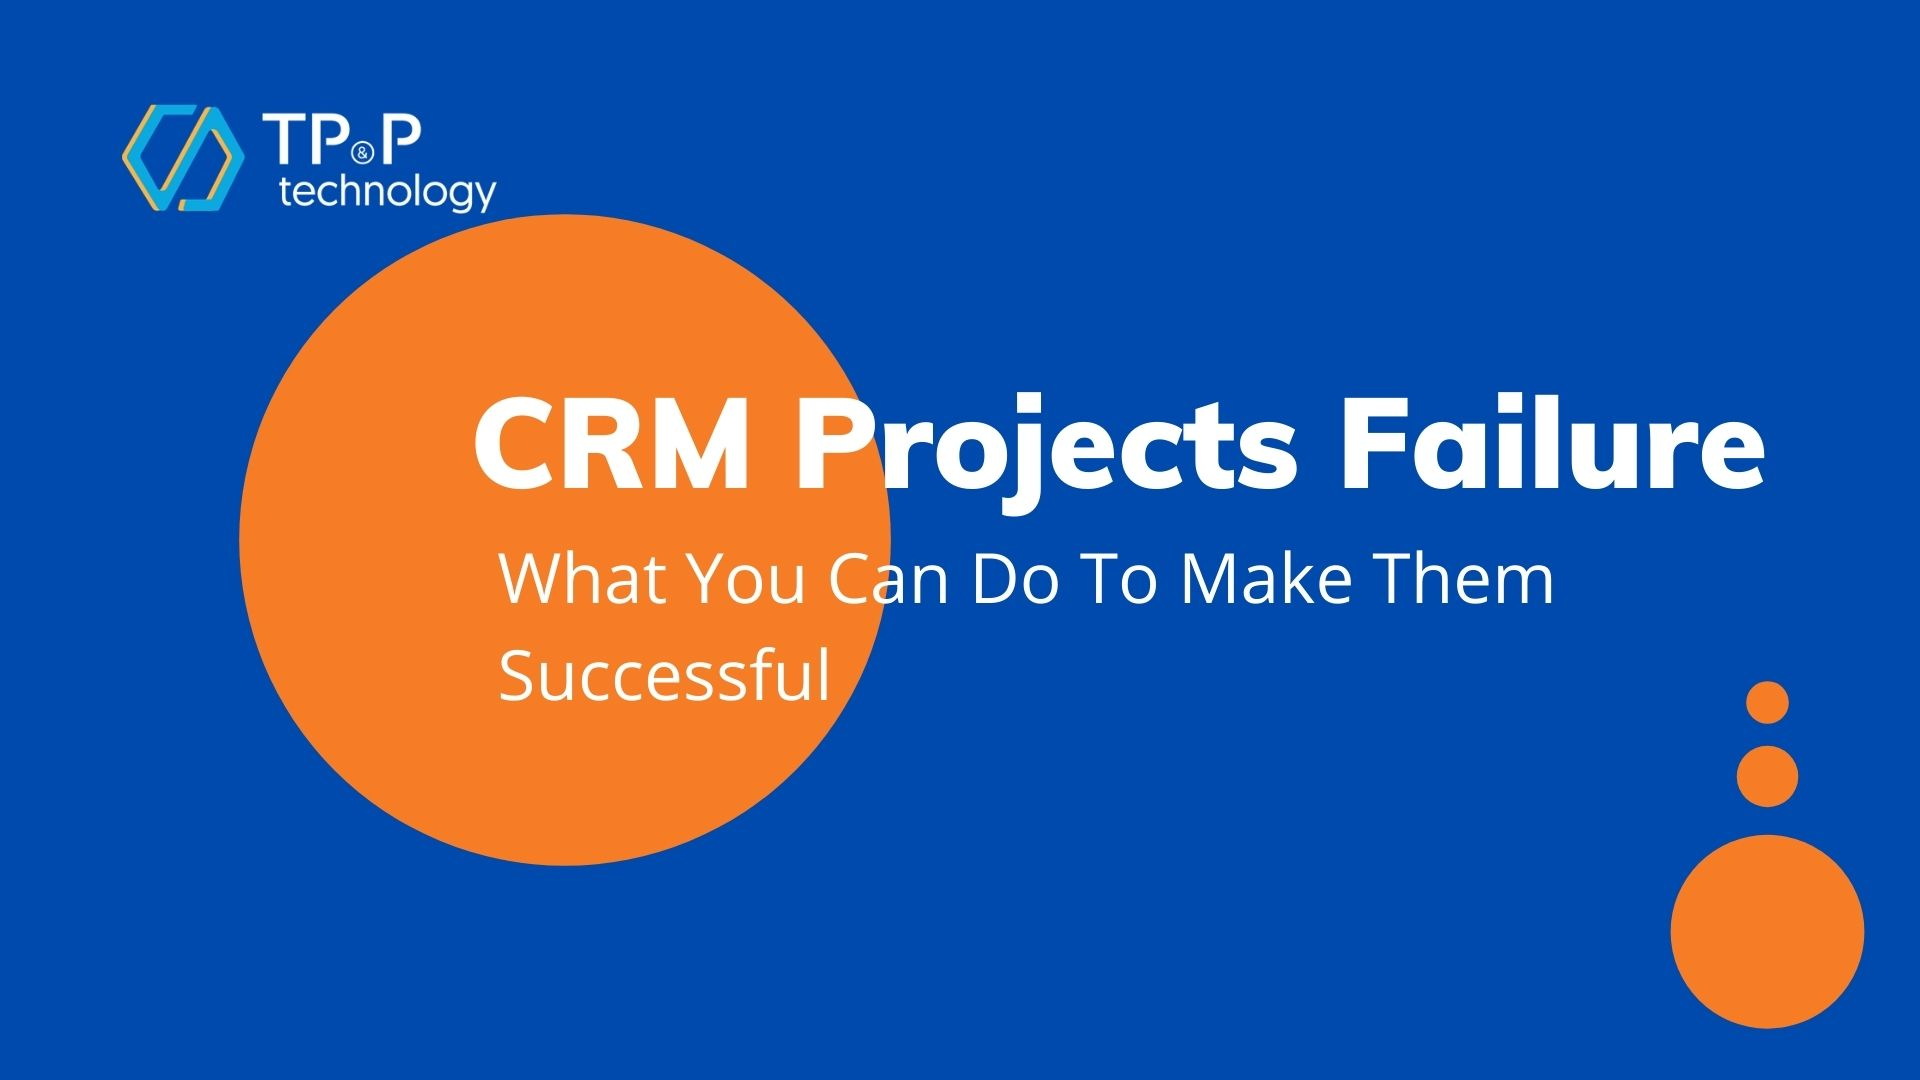 CRM Projects Failure: What You Can Do To Make Them Successful